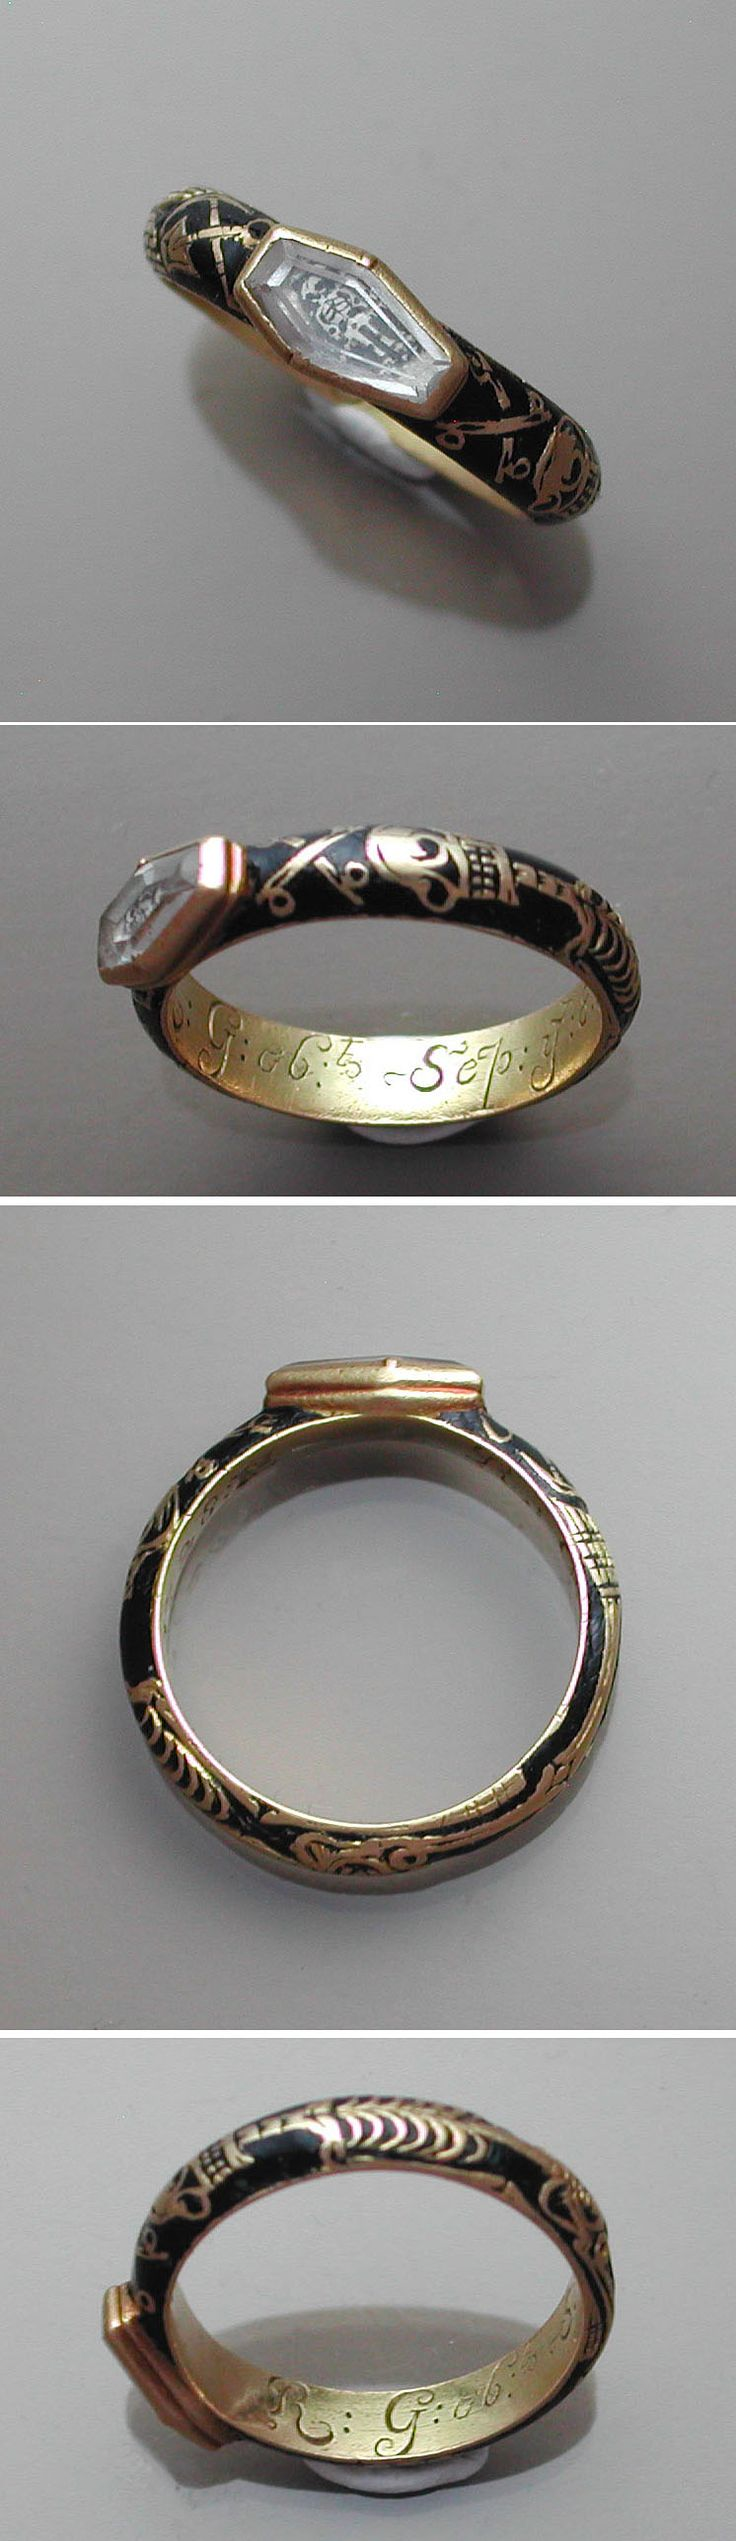 This ring dates from 1728; the absolute height of the memento mori style. It not only features the affectation of the 'coffin' shaped crystal, but it encapsulates the skeleton inlaid in black enamel around the band. Further to this, the element of the full skeleton inside the coffin crystal completes the sentiment. There is nowhere on the jewel that death is not represented.